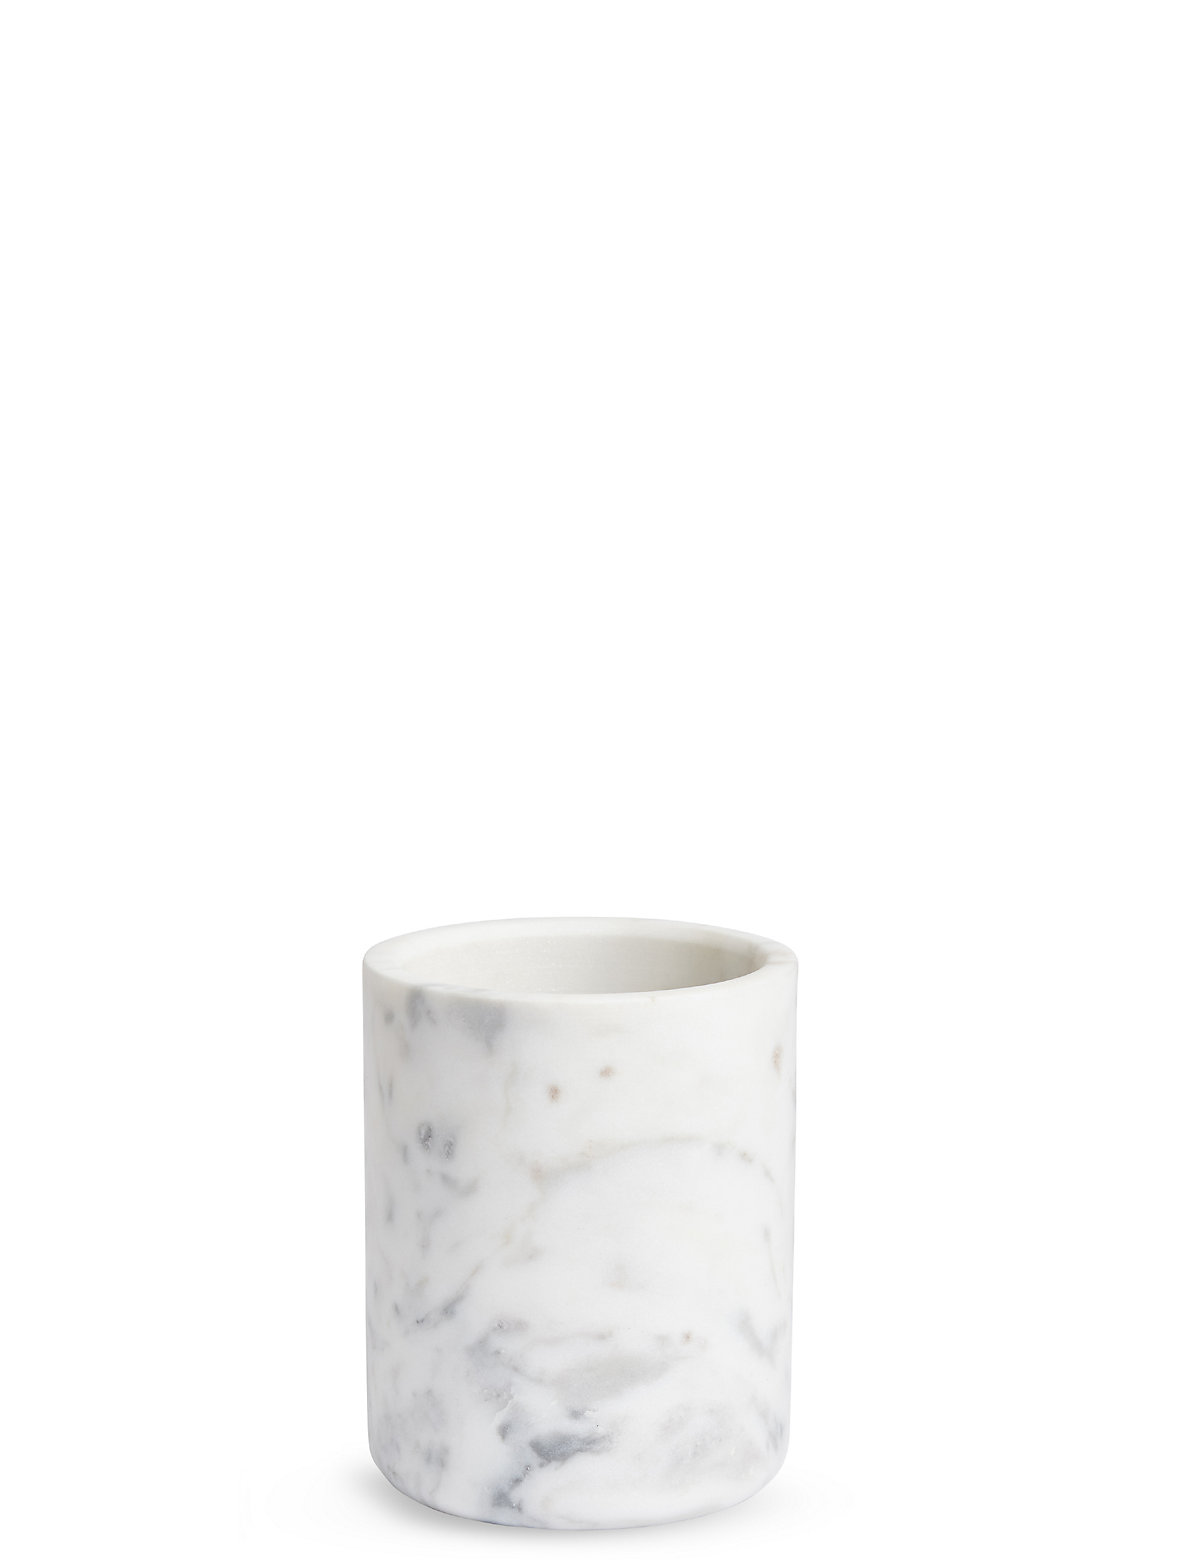 M&S chef Chef Marble Utensil Pot